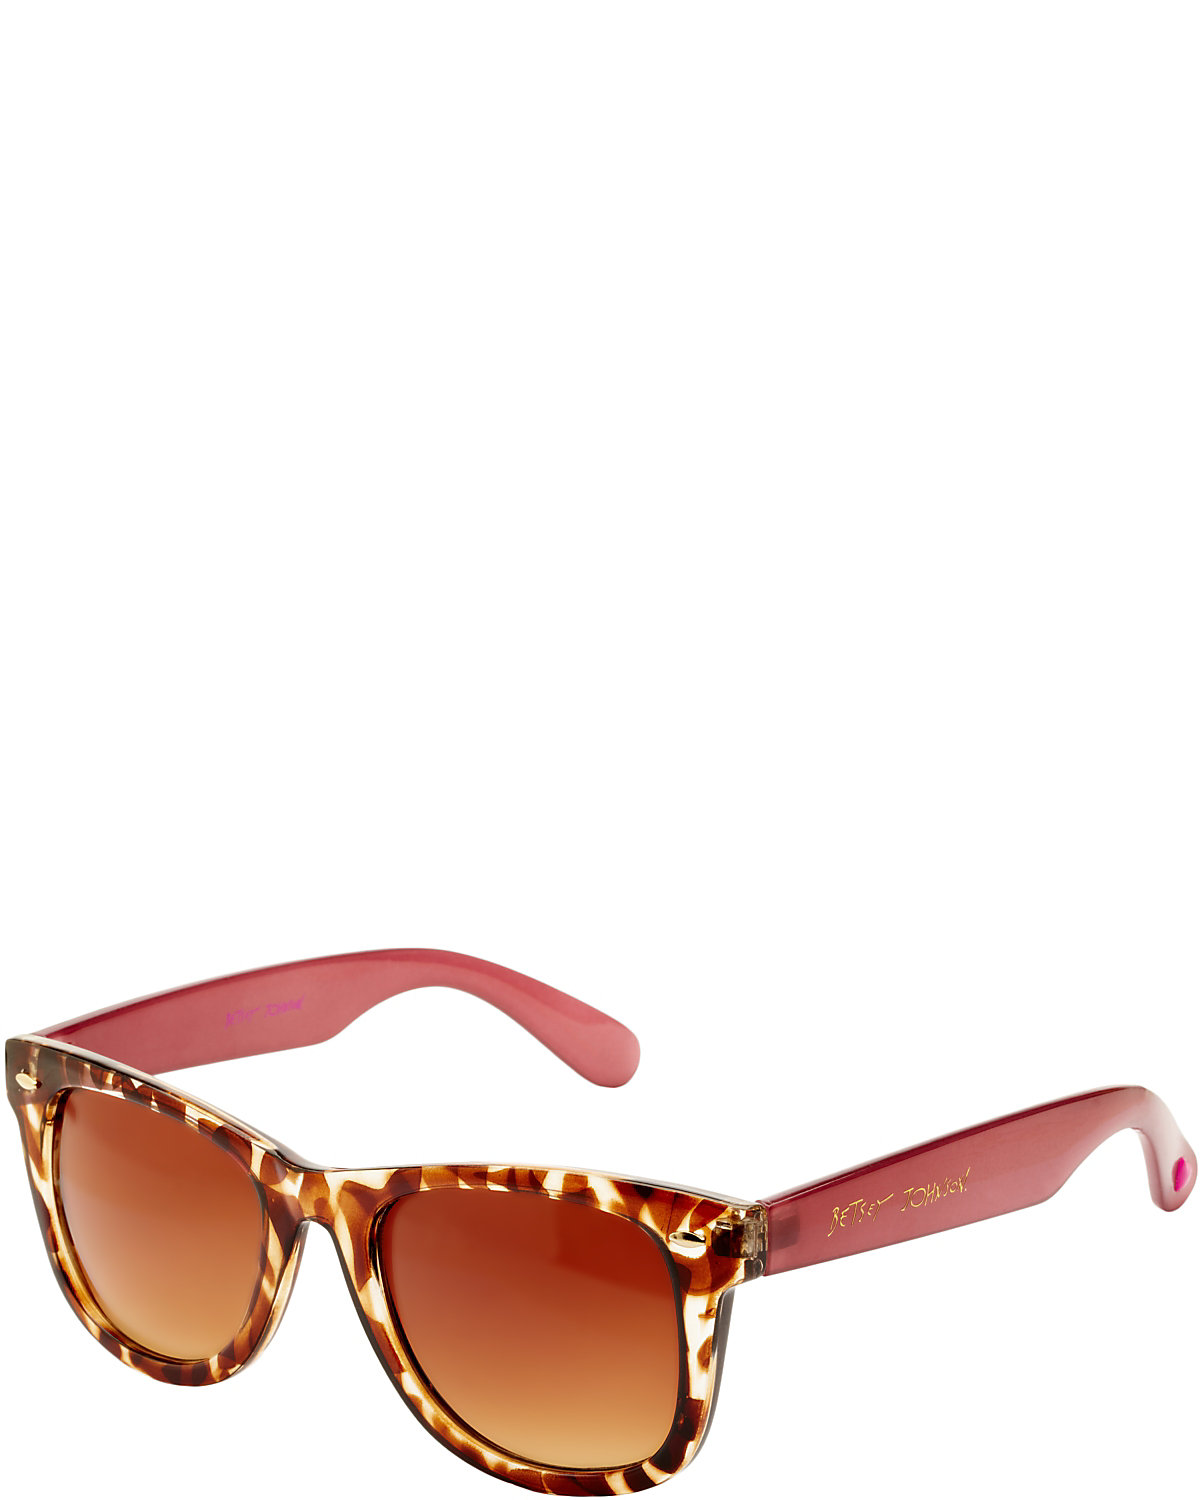 Latest Designer bags and sunglasses for women by Betsey Johnson 2014-2015 (17)